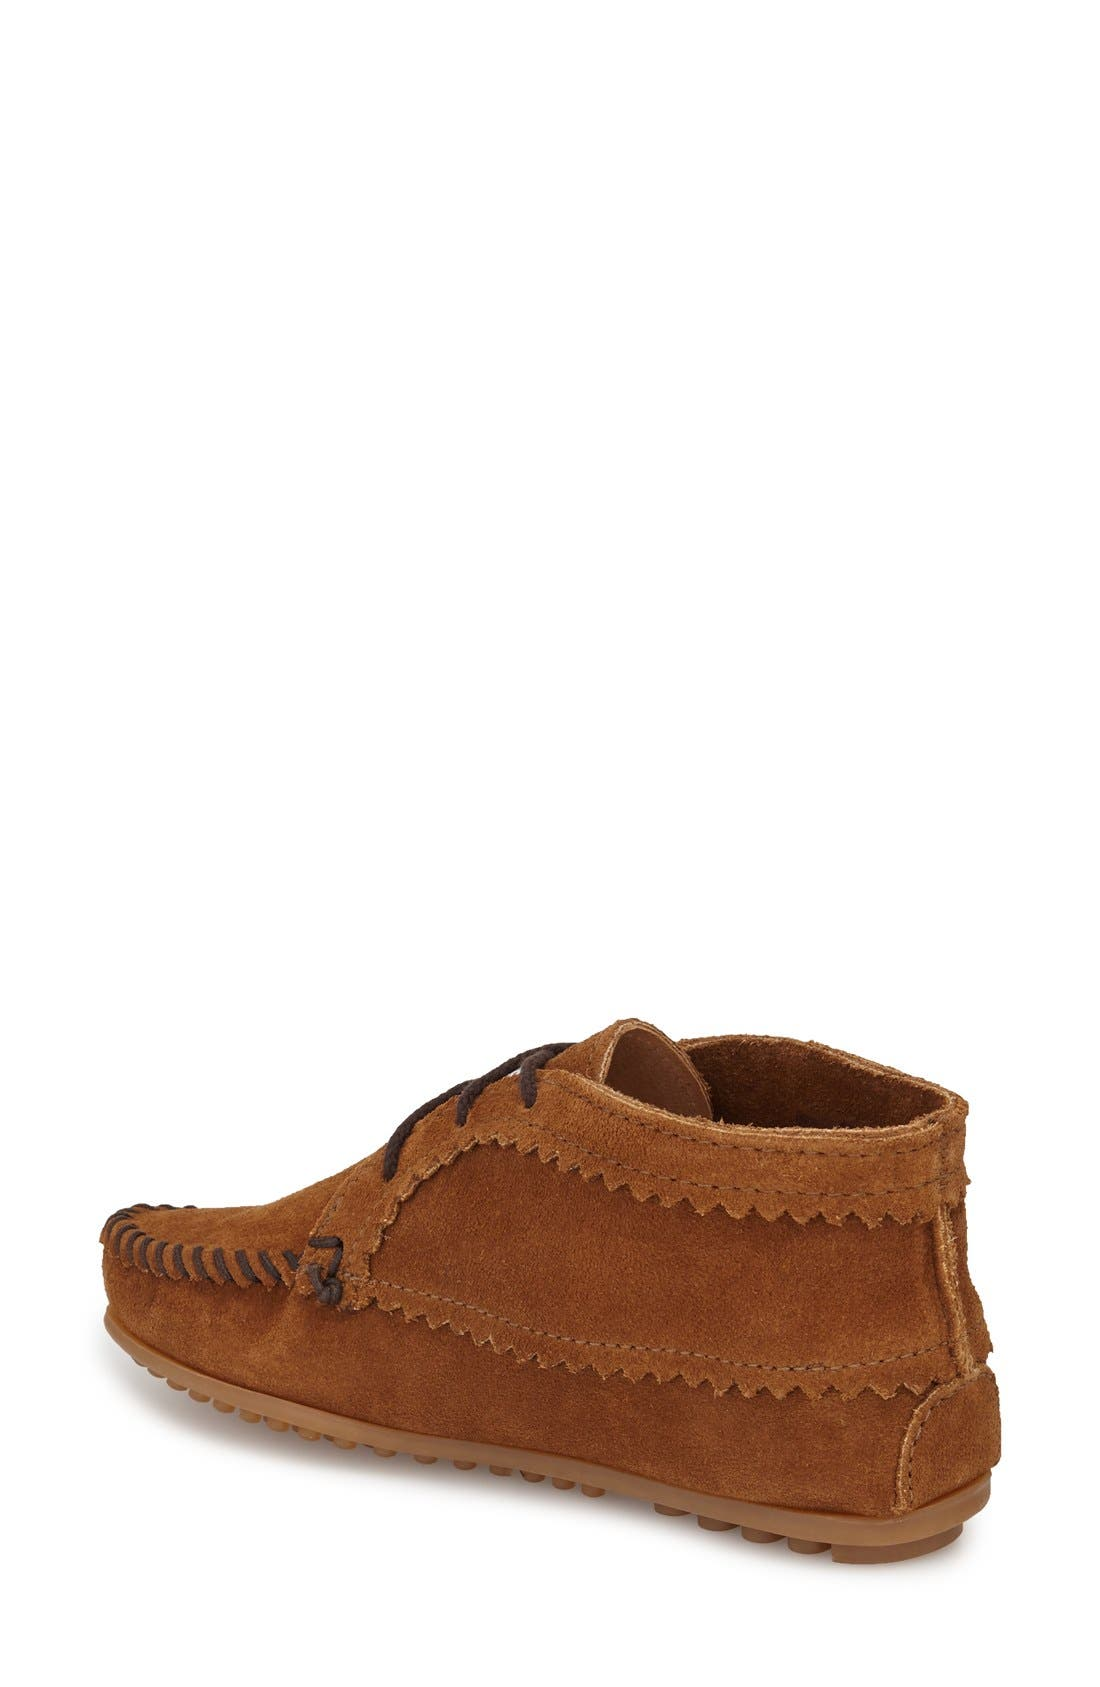 Alternate Image 2  - Minnetonka Chukka Moccasin Boot (Women)